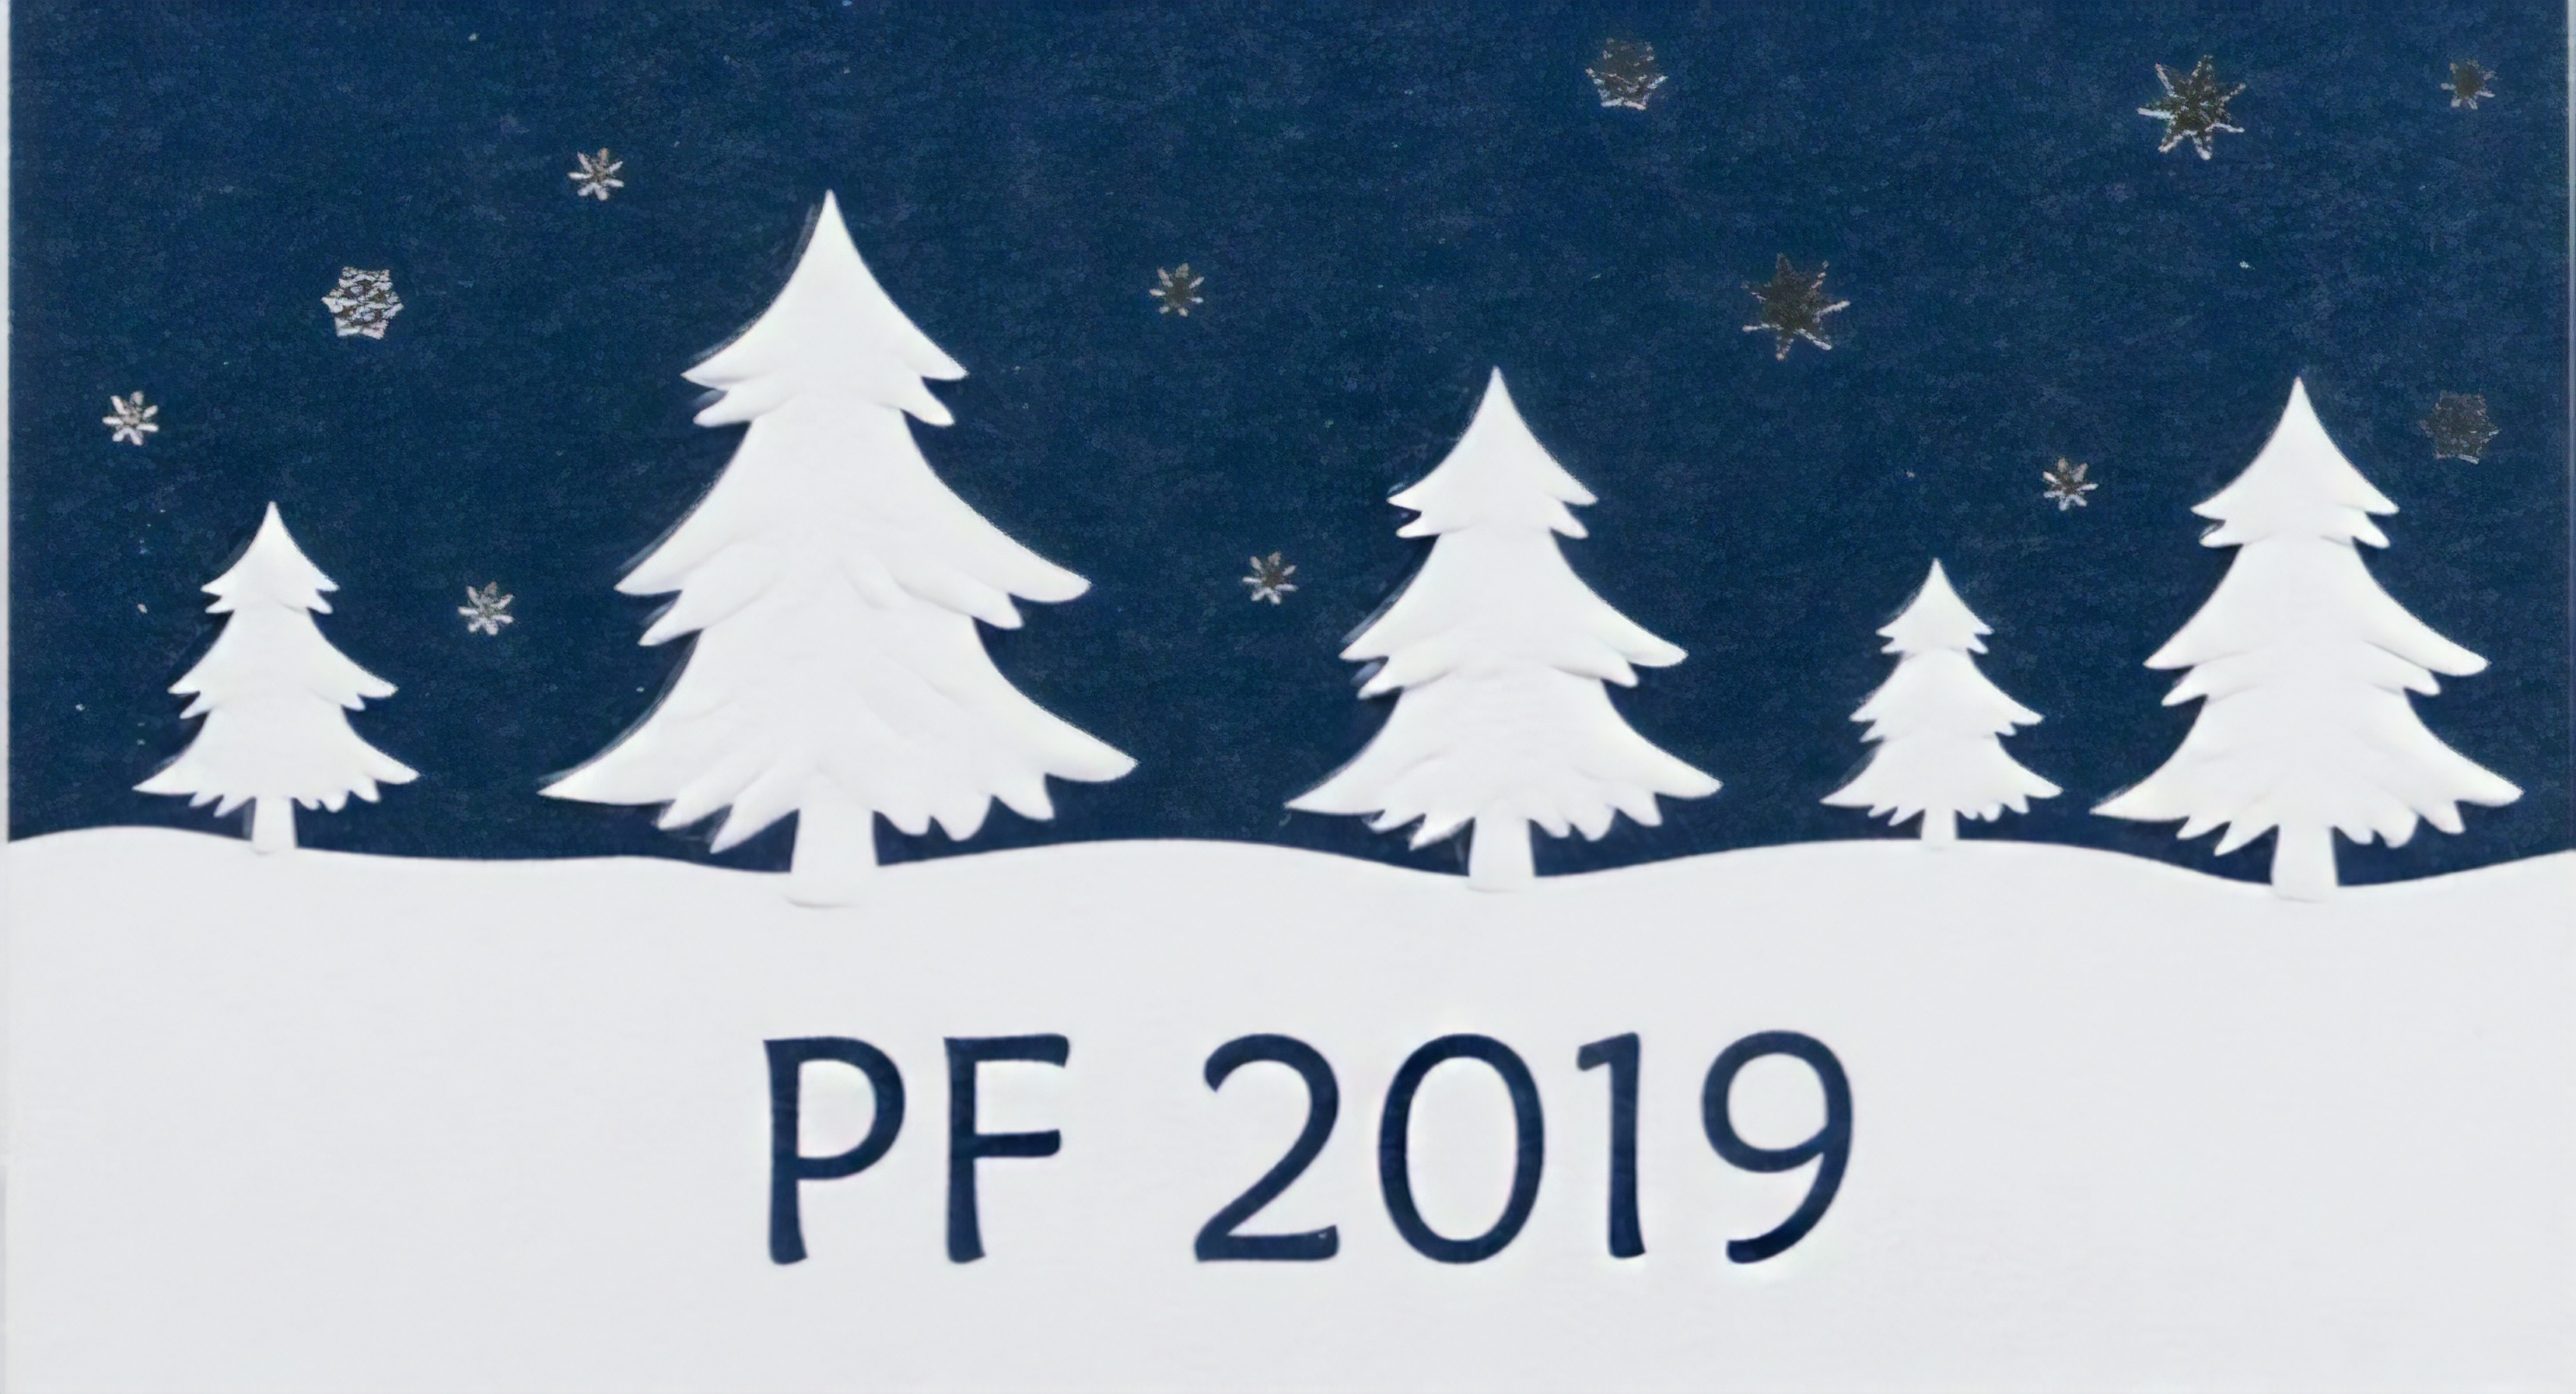 pf-2019-magic